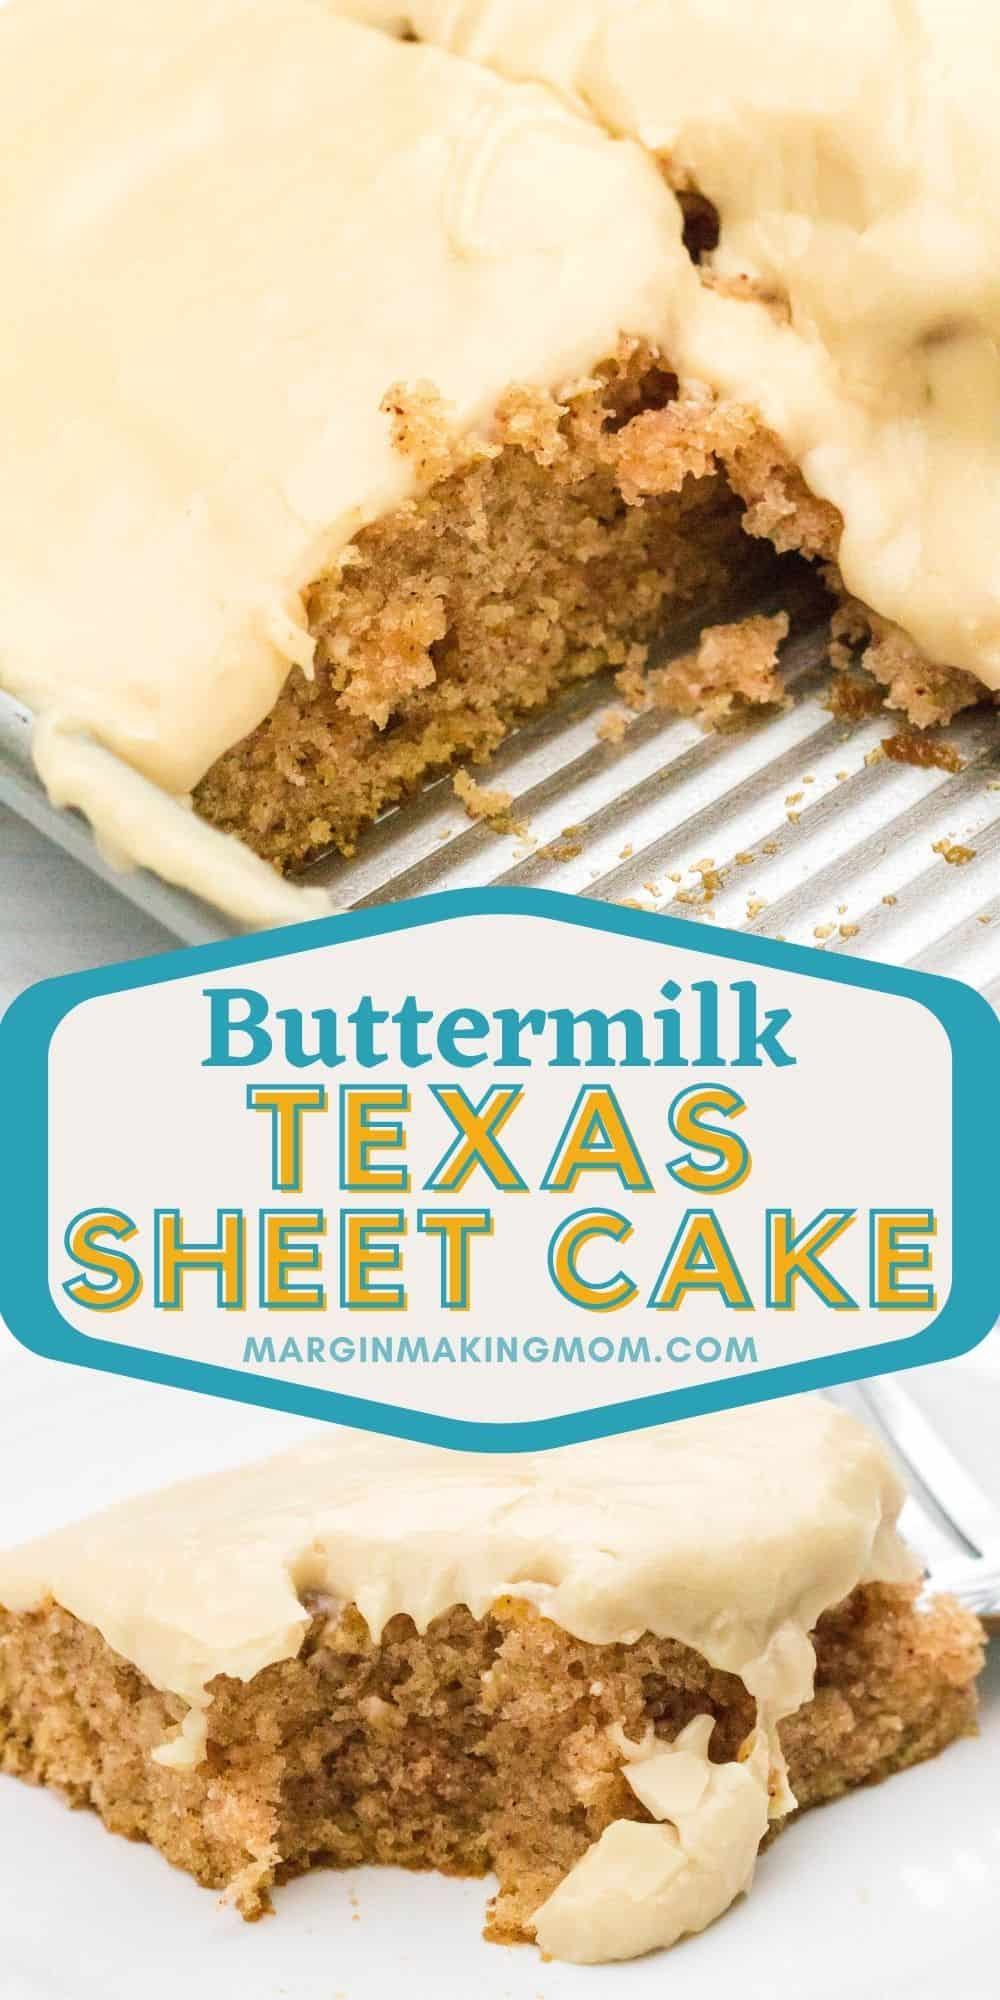 collage image featuring two photos of buttermilk texas sheet cake made with cinnamon. One photo shows the cake in the pan and the other photo shows a slice with a bite taken out of it